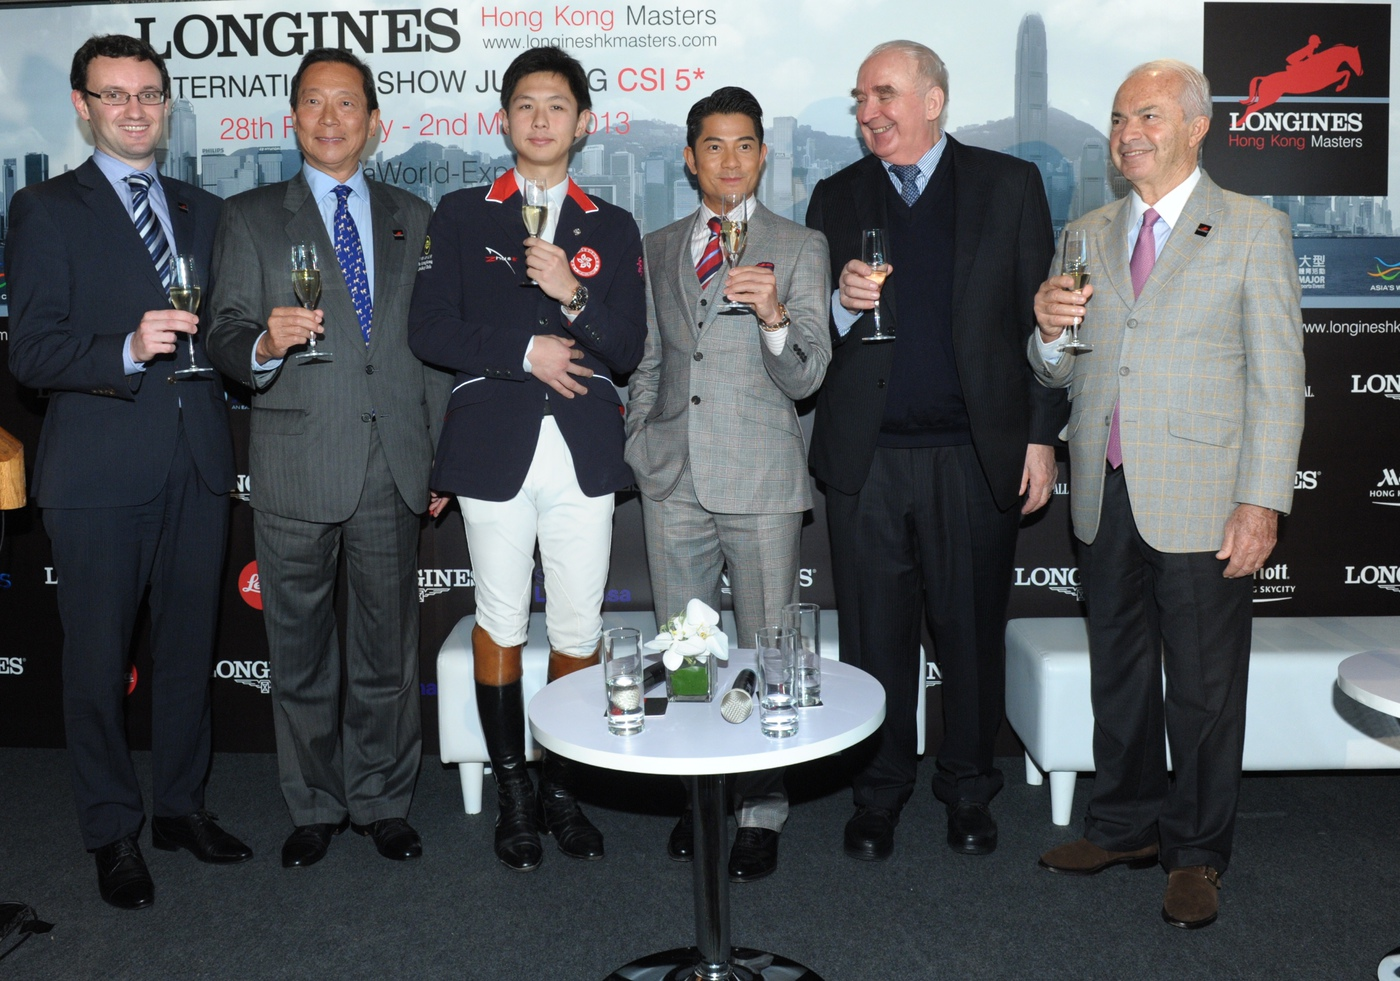 Longines Show Jumping Event: Longines Hong Kong Masters 2013 – A promising event 1